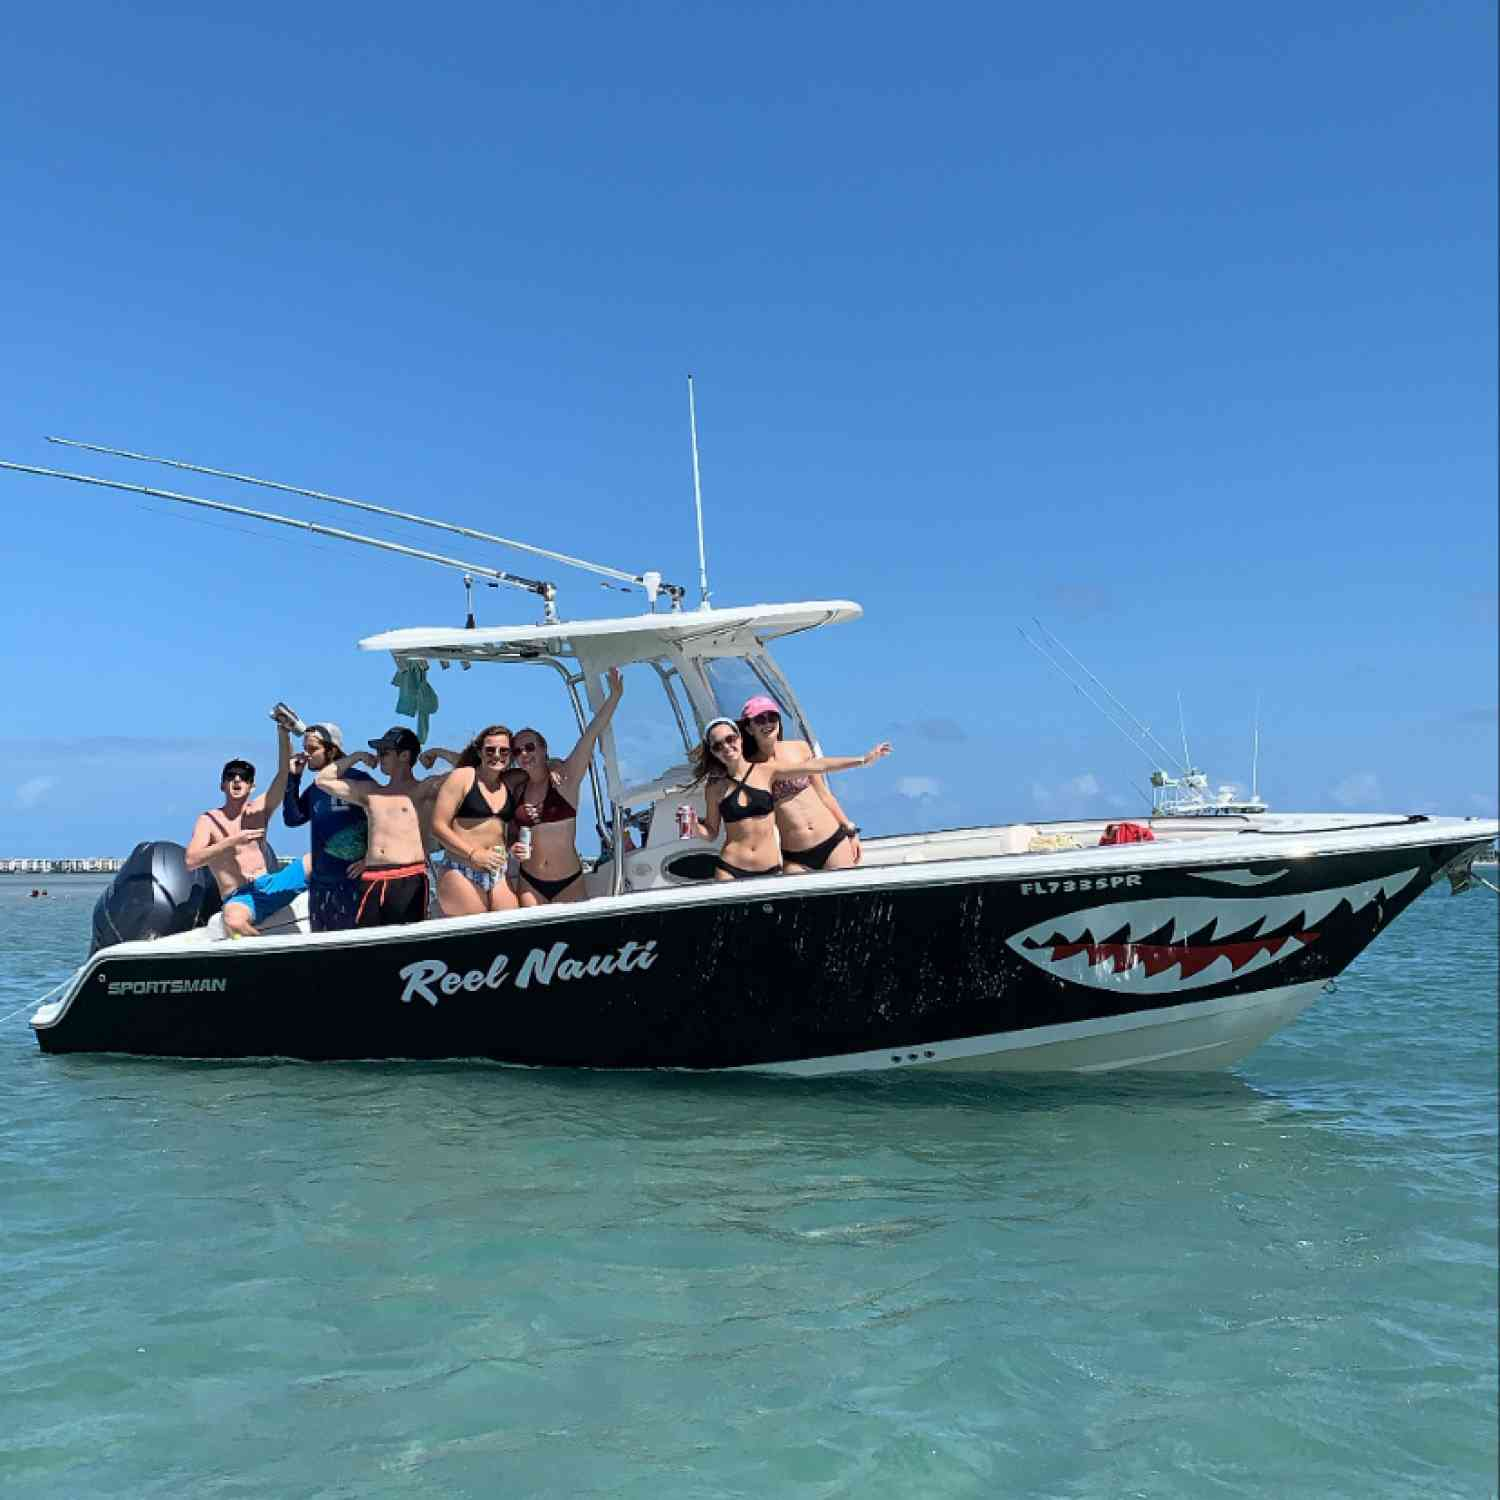 Title: Sandbar Sunday - On board their Sportsman Open 252 Center Console - Location: Stuart, FL. Participating in the Photo Contest #SportsmanApril2020